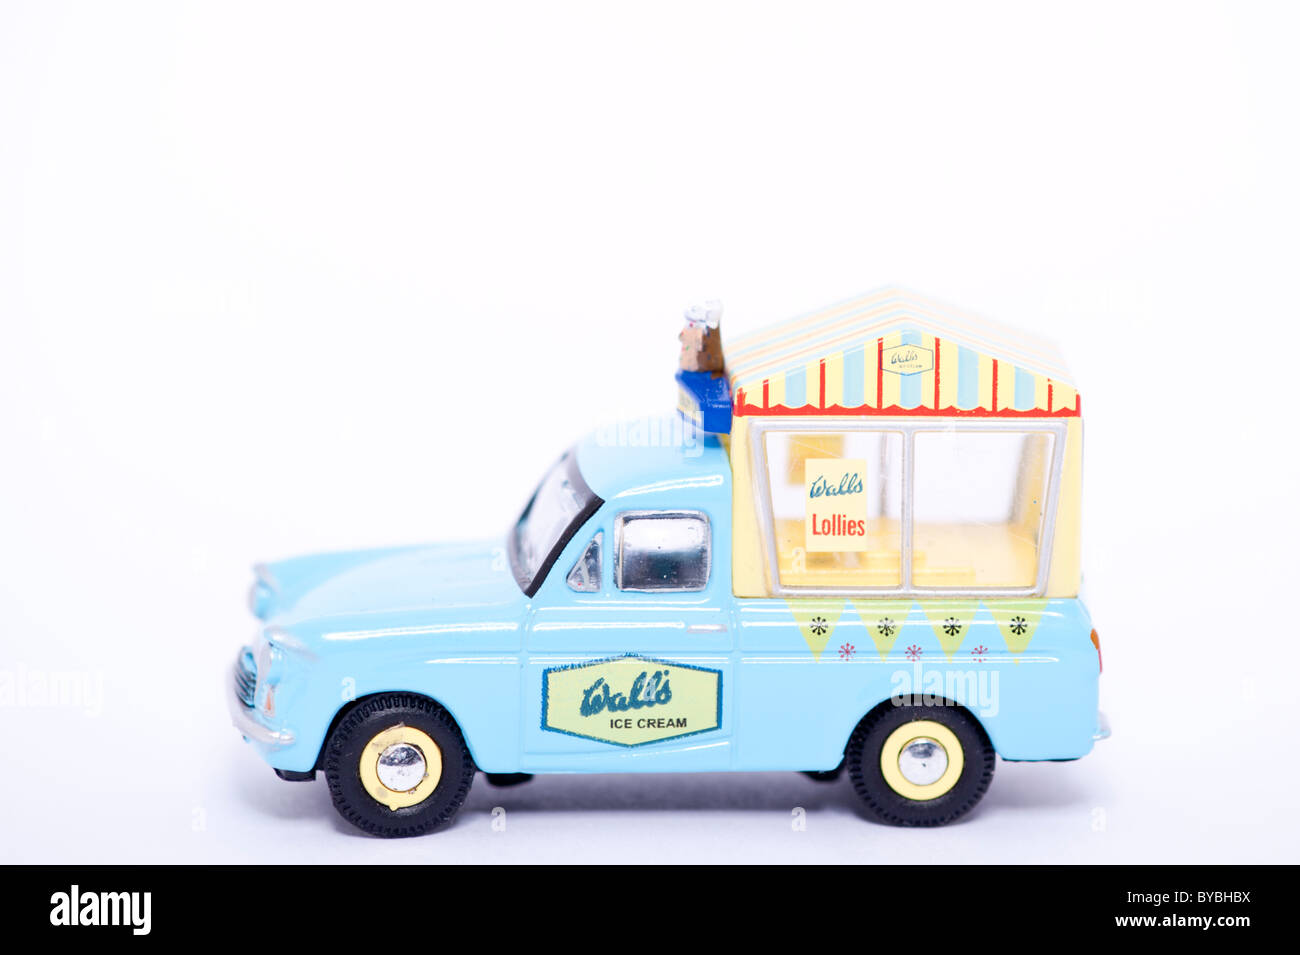 A toy model walls ice cream van on a white background - Stock Image